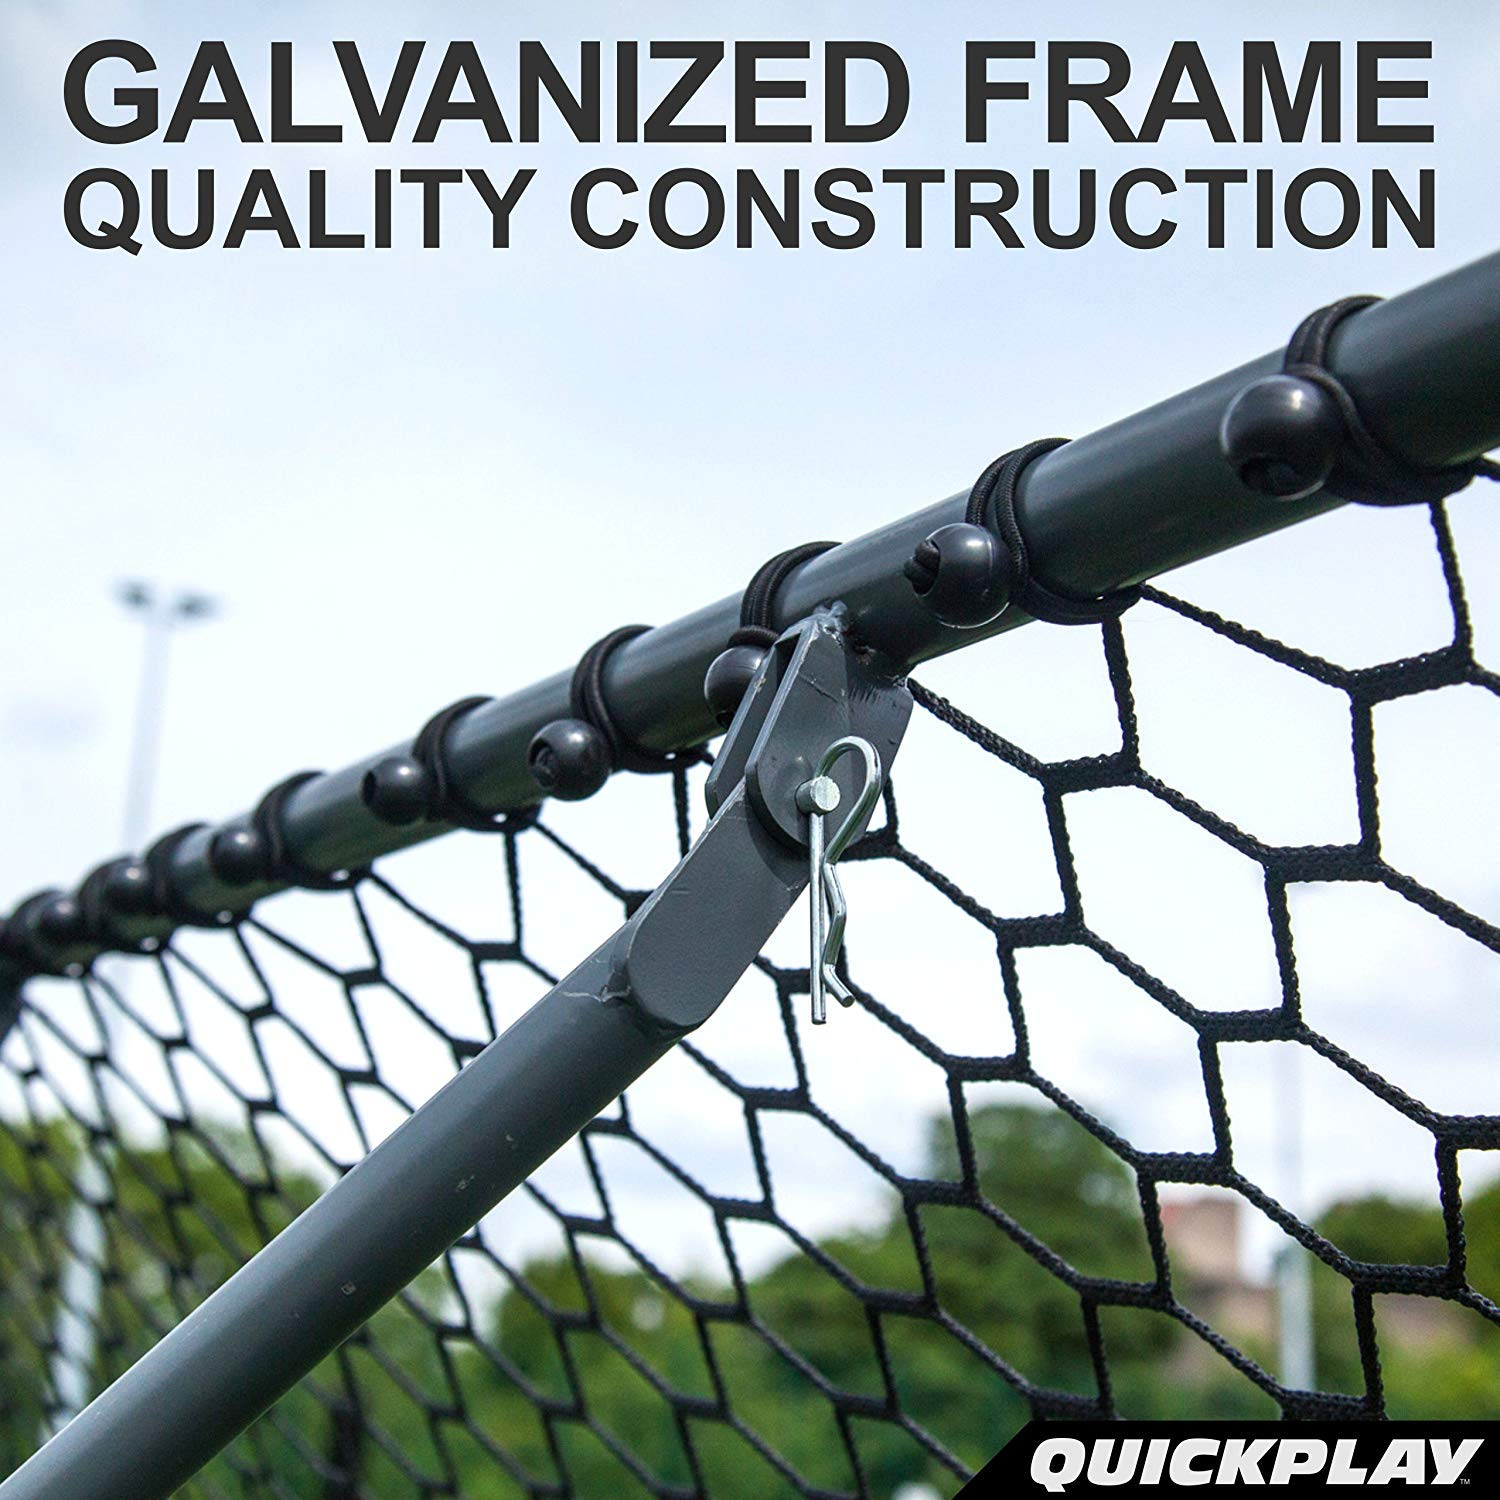 QUICKPLAY PRO Rebounder - Pitch Back Baseball, Soccer Rebounder ...